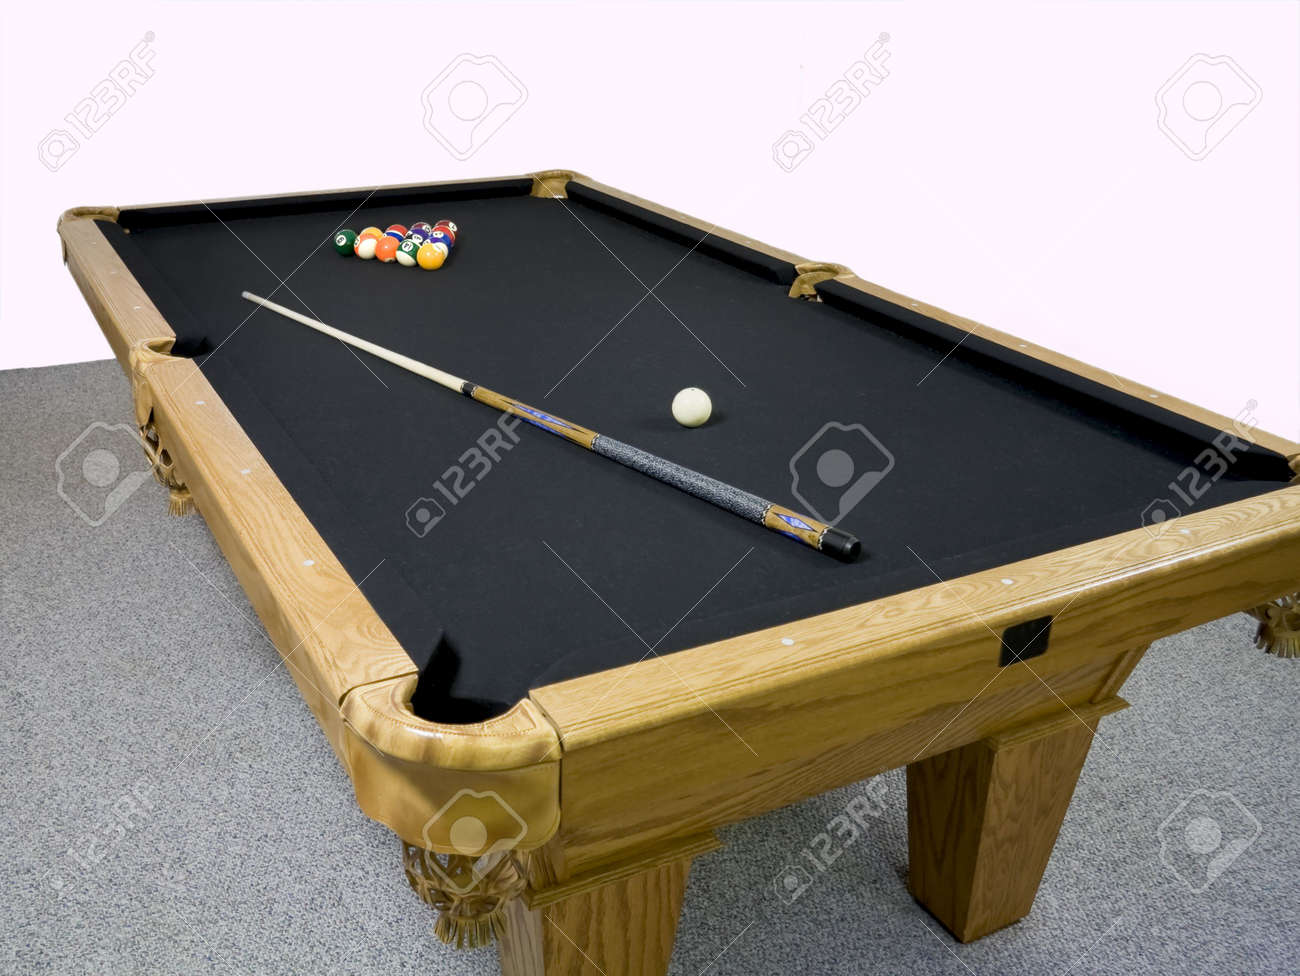 table billiard olhausen pool now tables shop belmont htm p